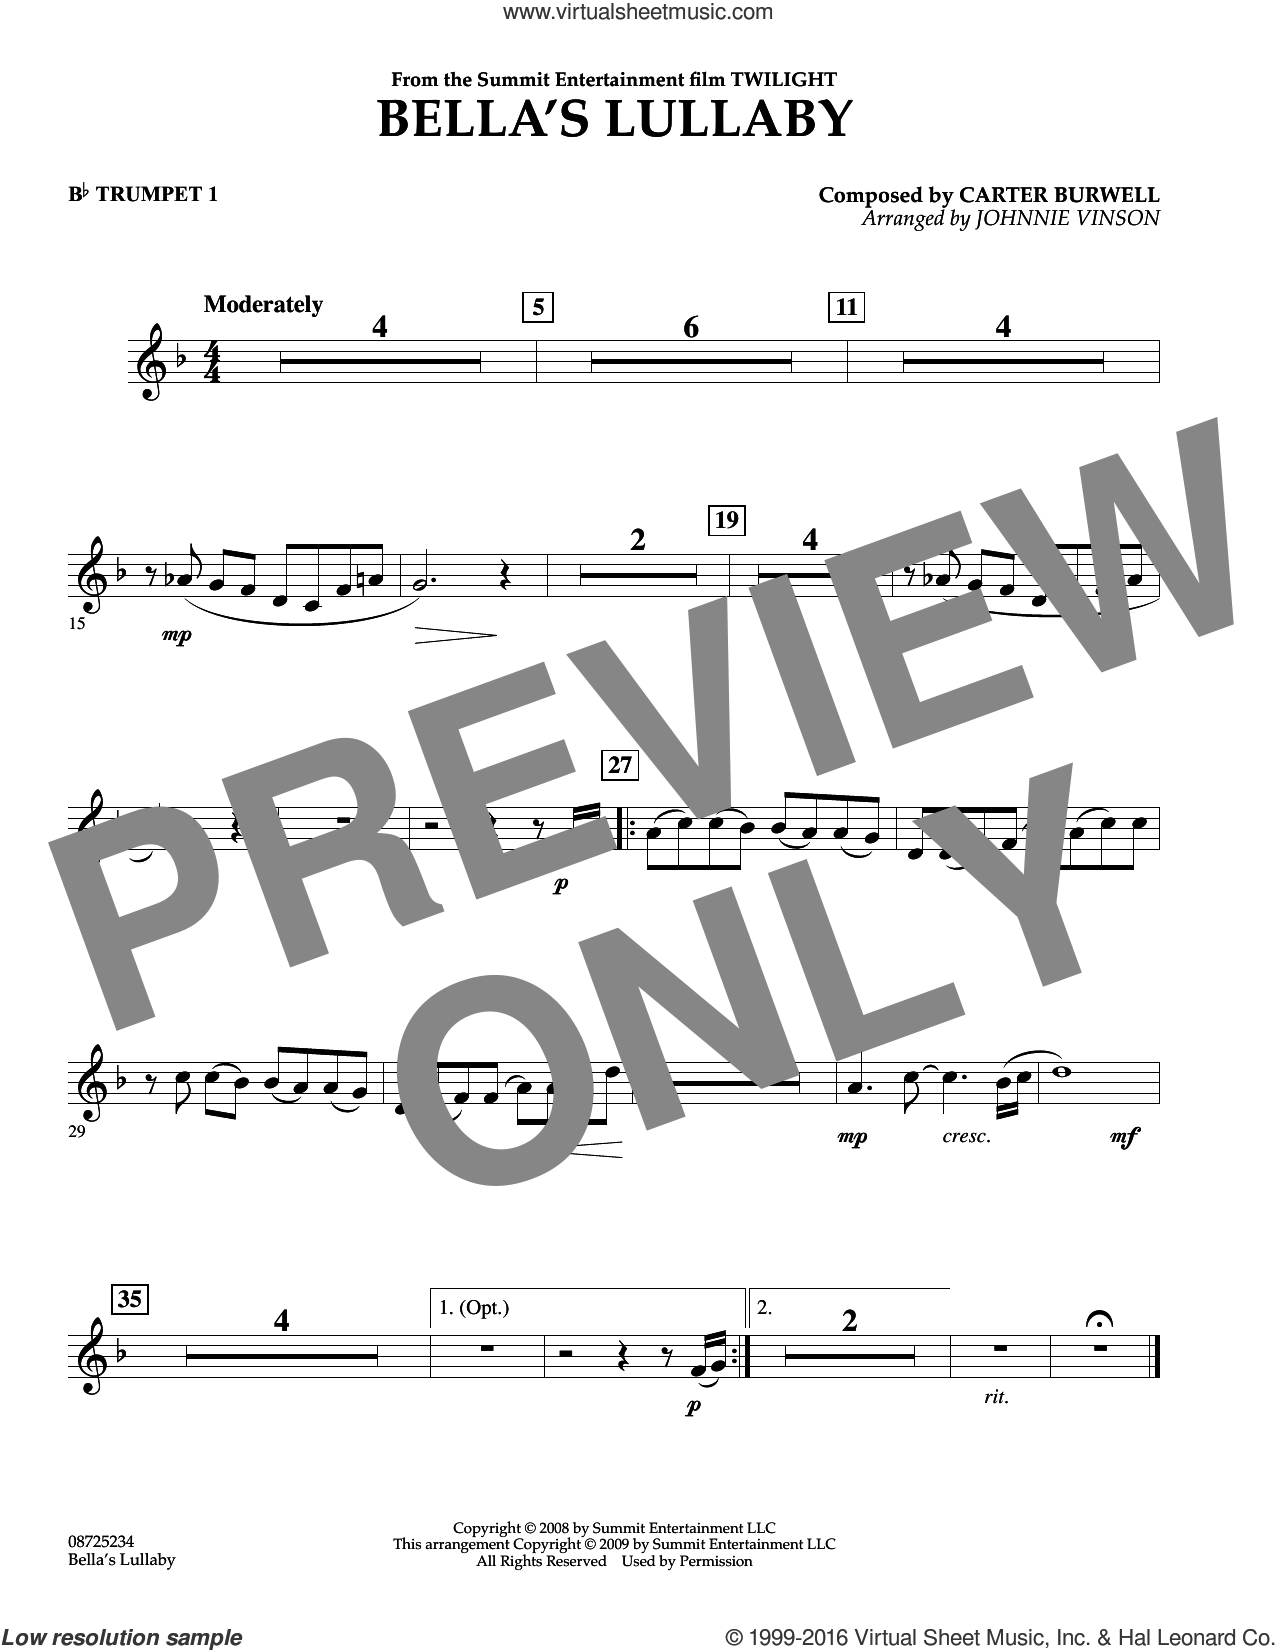 Bella's Lullaby (from Twilight) sheet music for concert band (Bb trumpet 1) by Carter Burwell and Johnnie Vinson, intermediate skill level